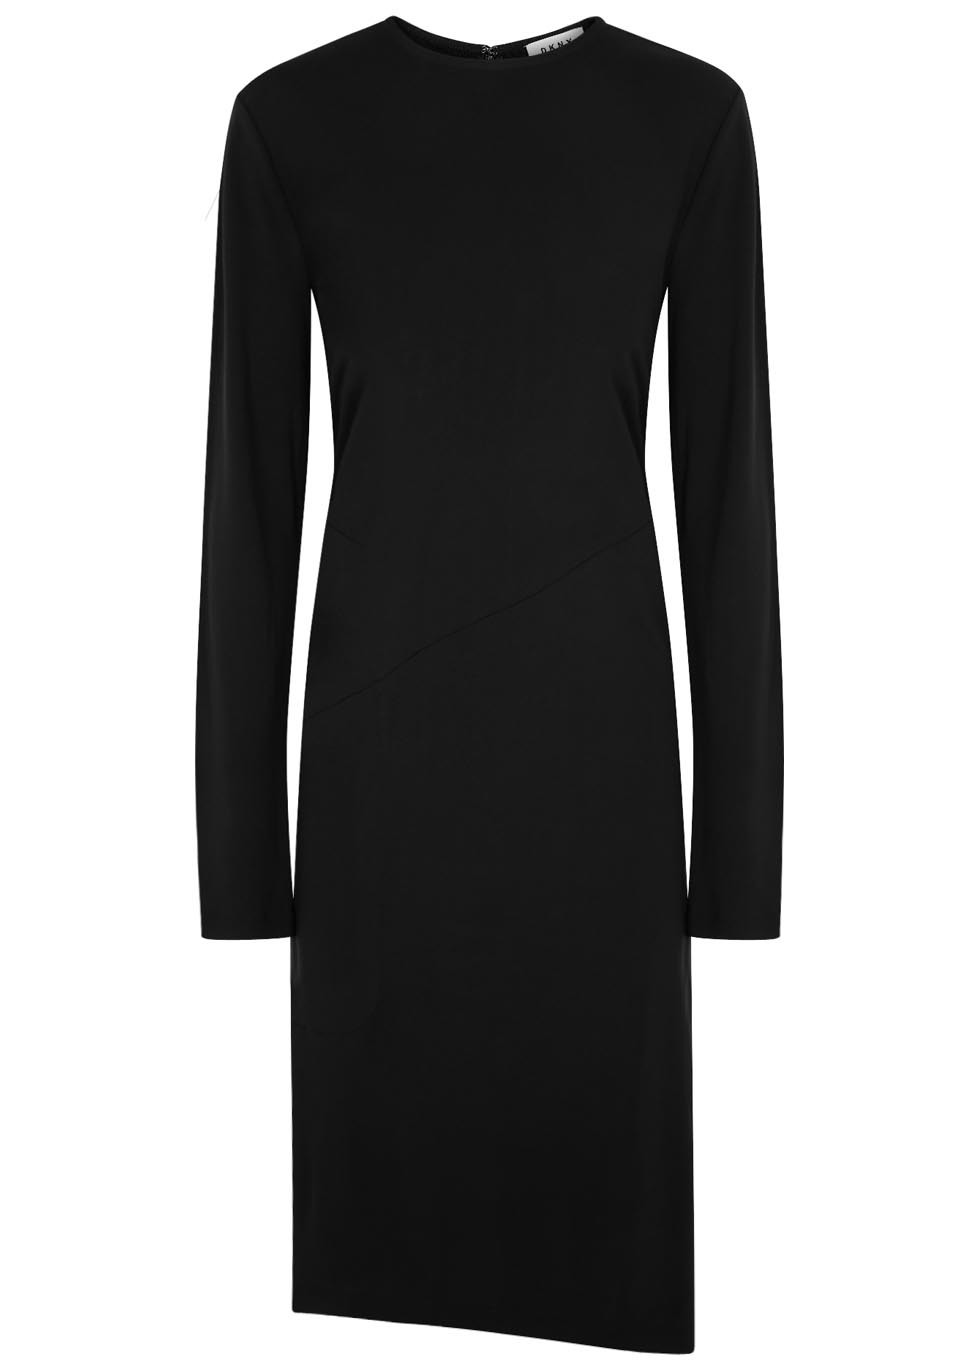 Black Jersey Crepe Dress - length: below the knee; pattern: plain; predominant colour: black; occasions: evening; fit: body skimming; style: asymmetric (hem); fibres: viscose/rayon - 100%; neckline: crew; sleeve length: long sleeve; sleeve style: standard; pattern type: fabric; texture group: jersey - stretchy/drapey; season: s/s 2016